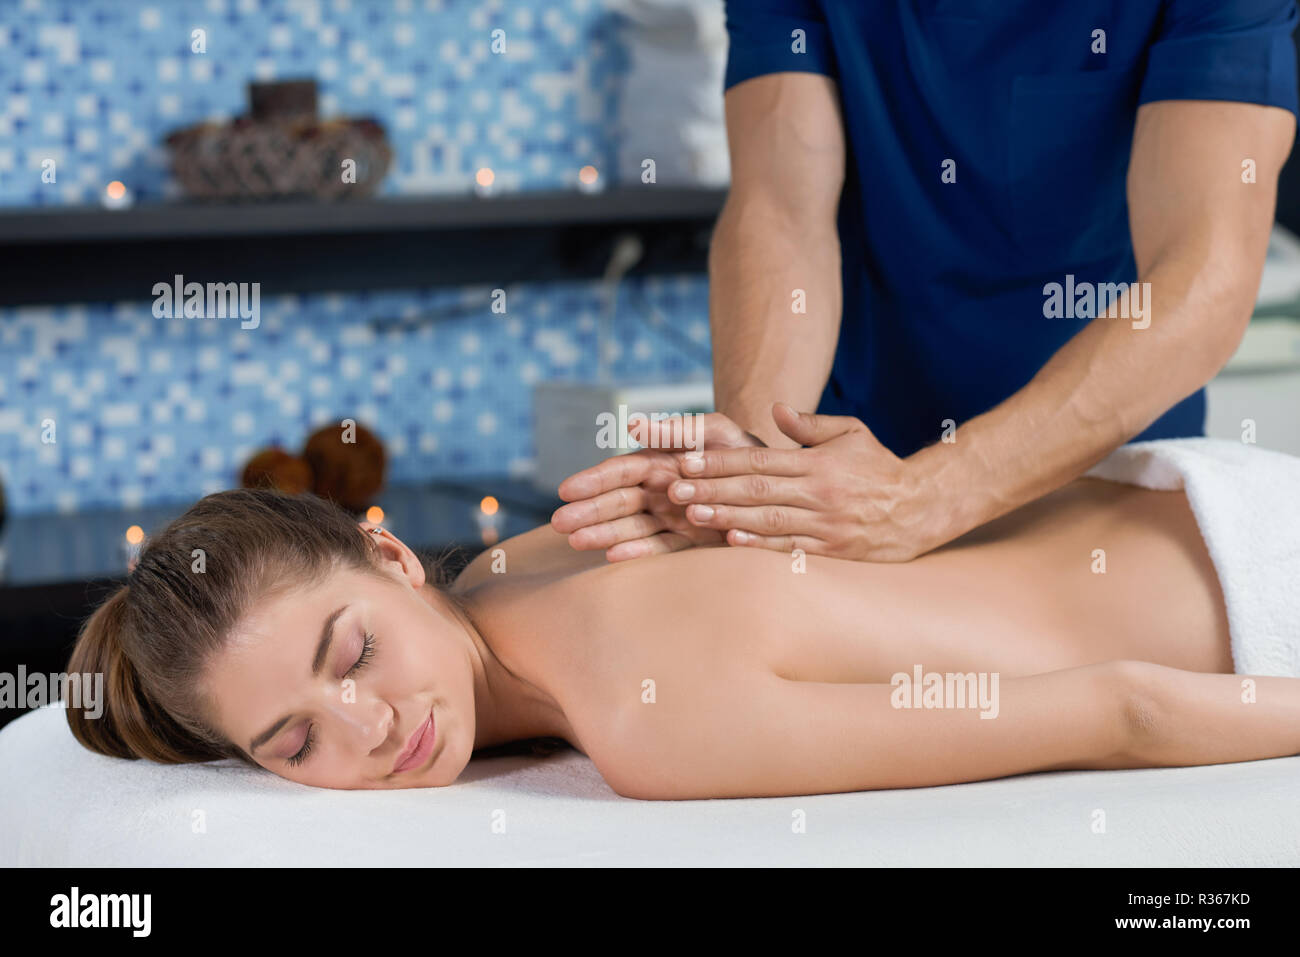 Side view of smiling female client receiving relaxing massage in spa salon. Masseur stretching spine of woman lying on couch with muscular hands. Concept of relaxation and satisfaction. - Stock Image